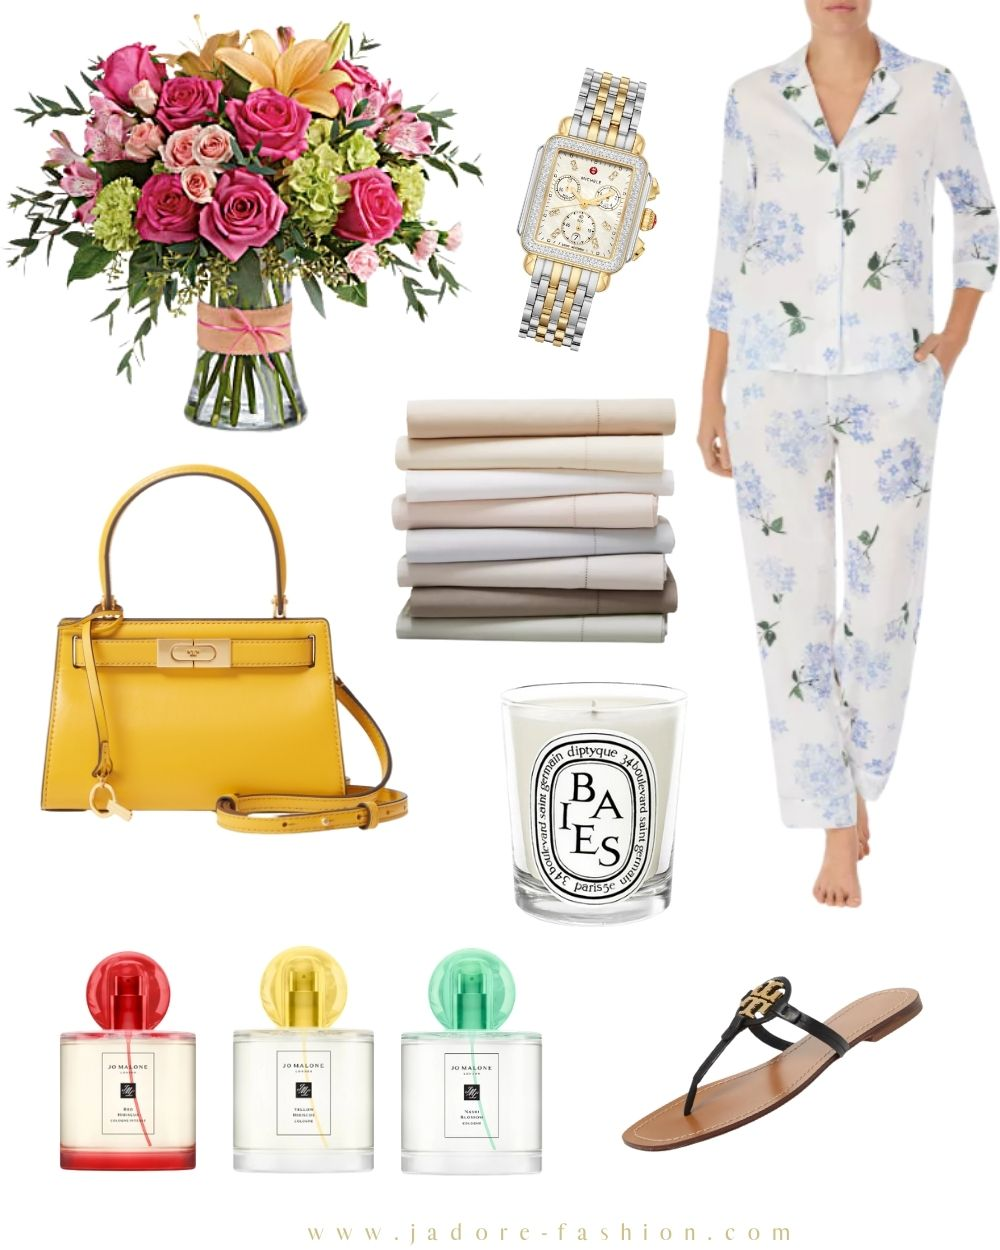 Stella-adewunmi-of-jadore-fashion-blog-share-the-best-mothers-day-gifts-ideas